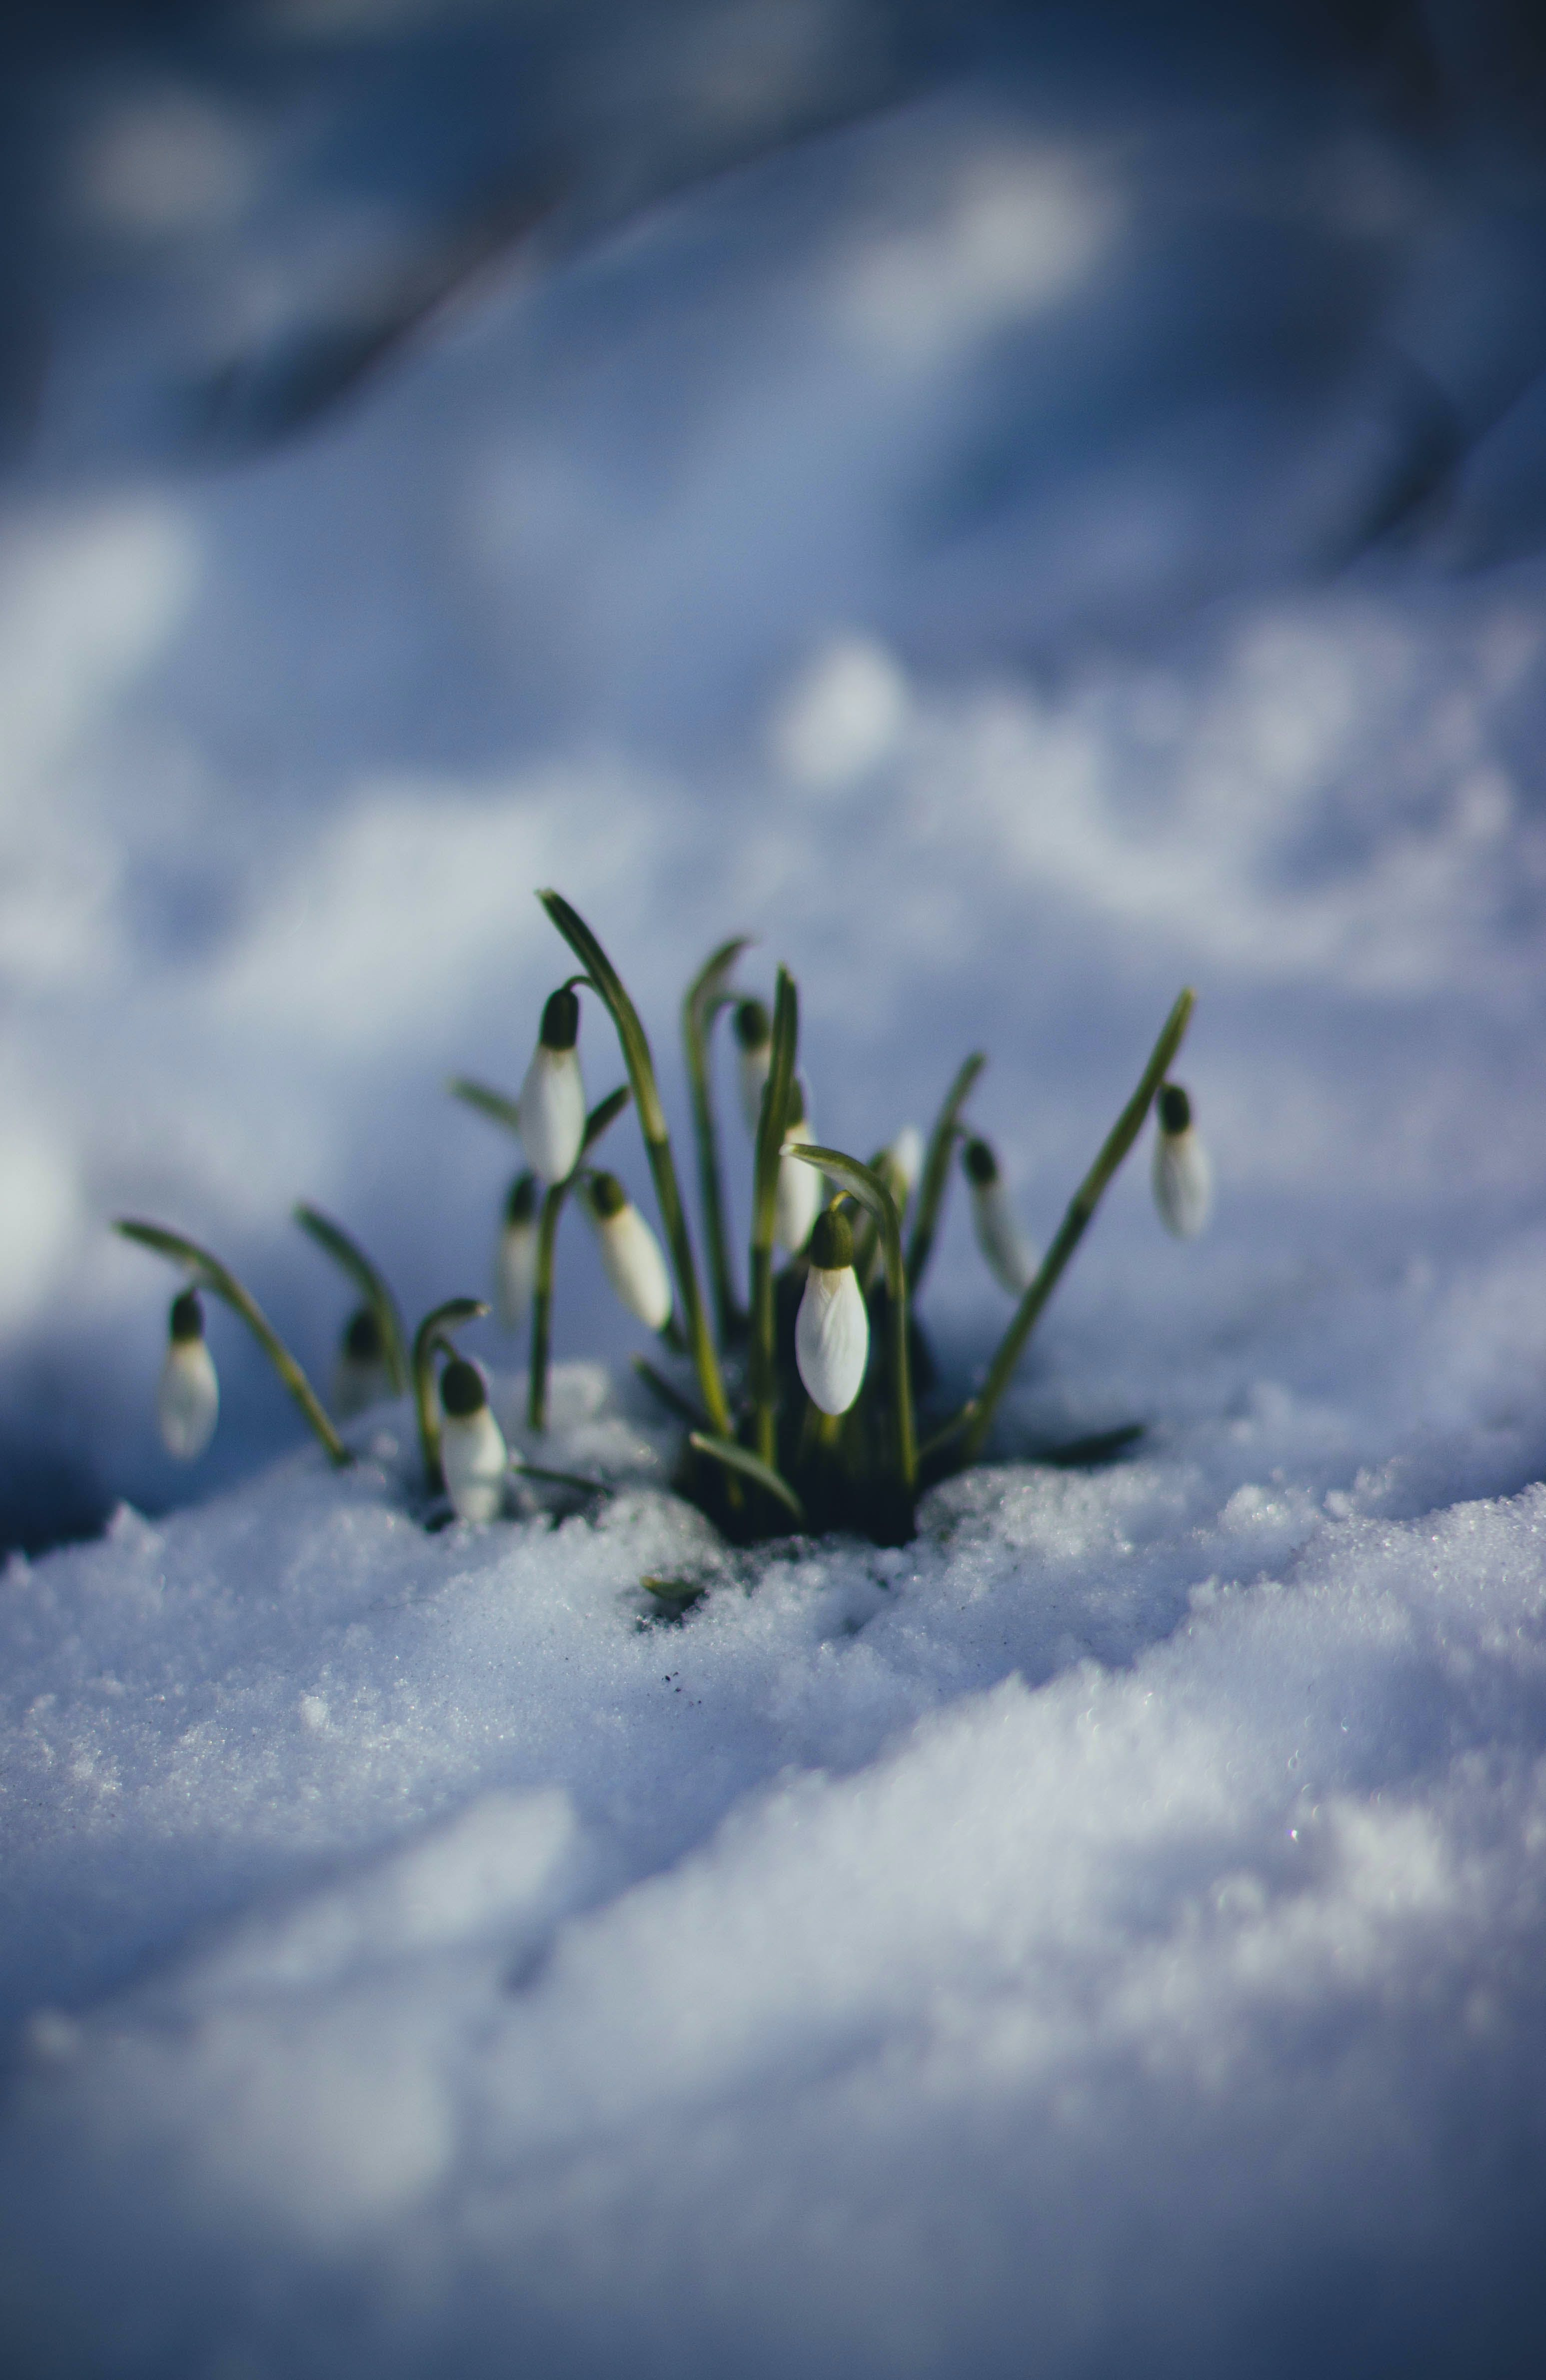 A small grouping of white flowers growing through snow.